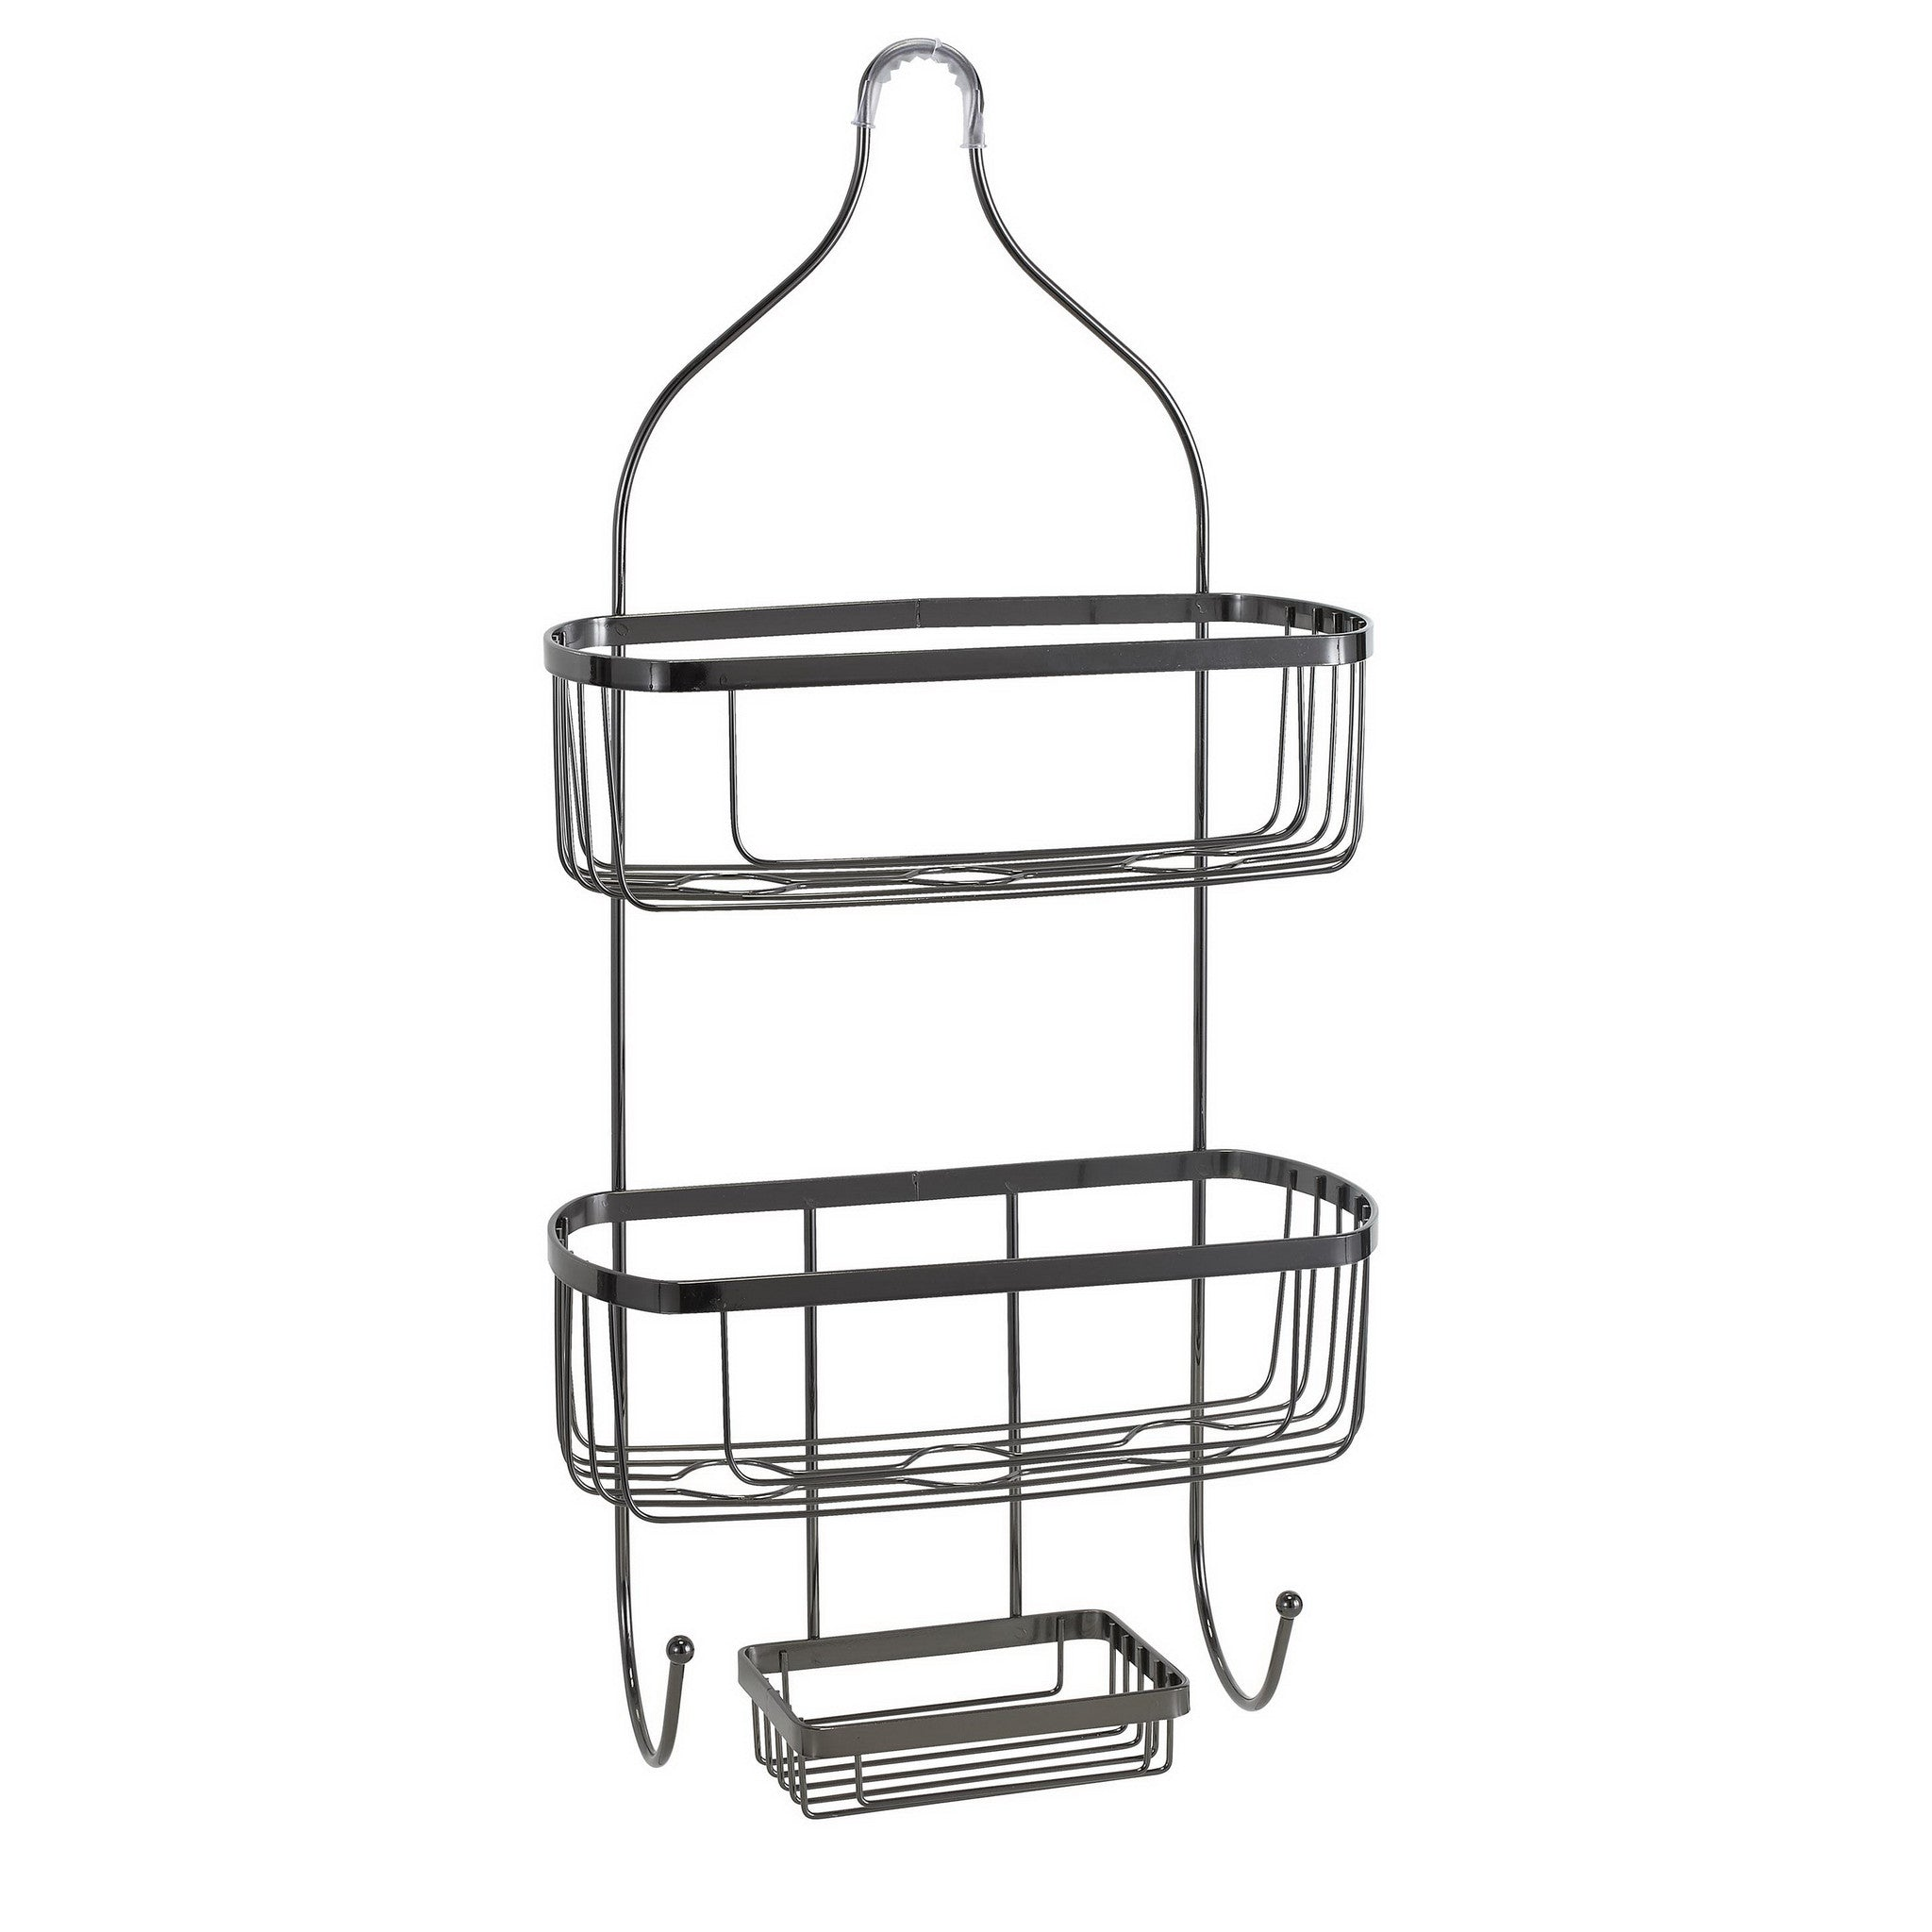 Bath Bliss Prince Design Shower Caddy in Black Onyx – SPACE WITH TASTE